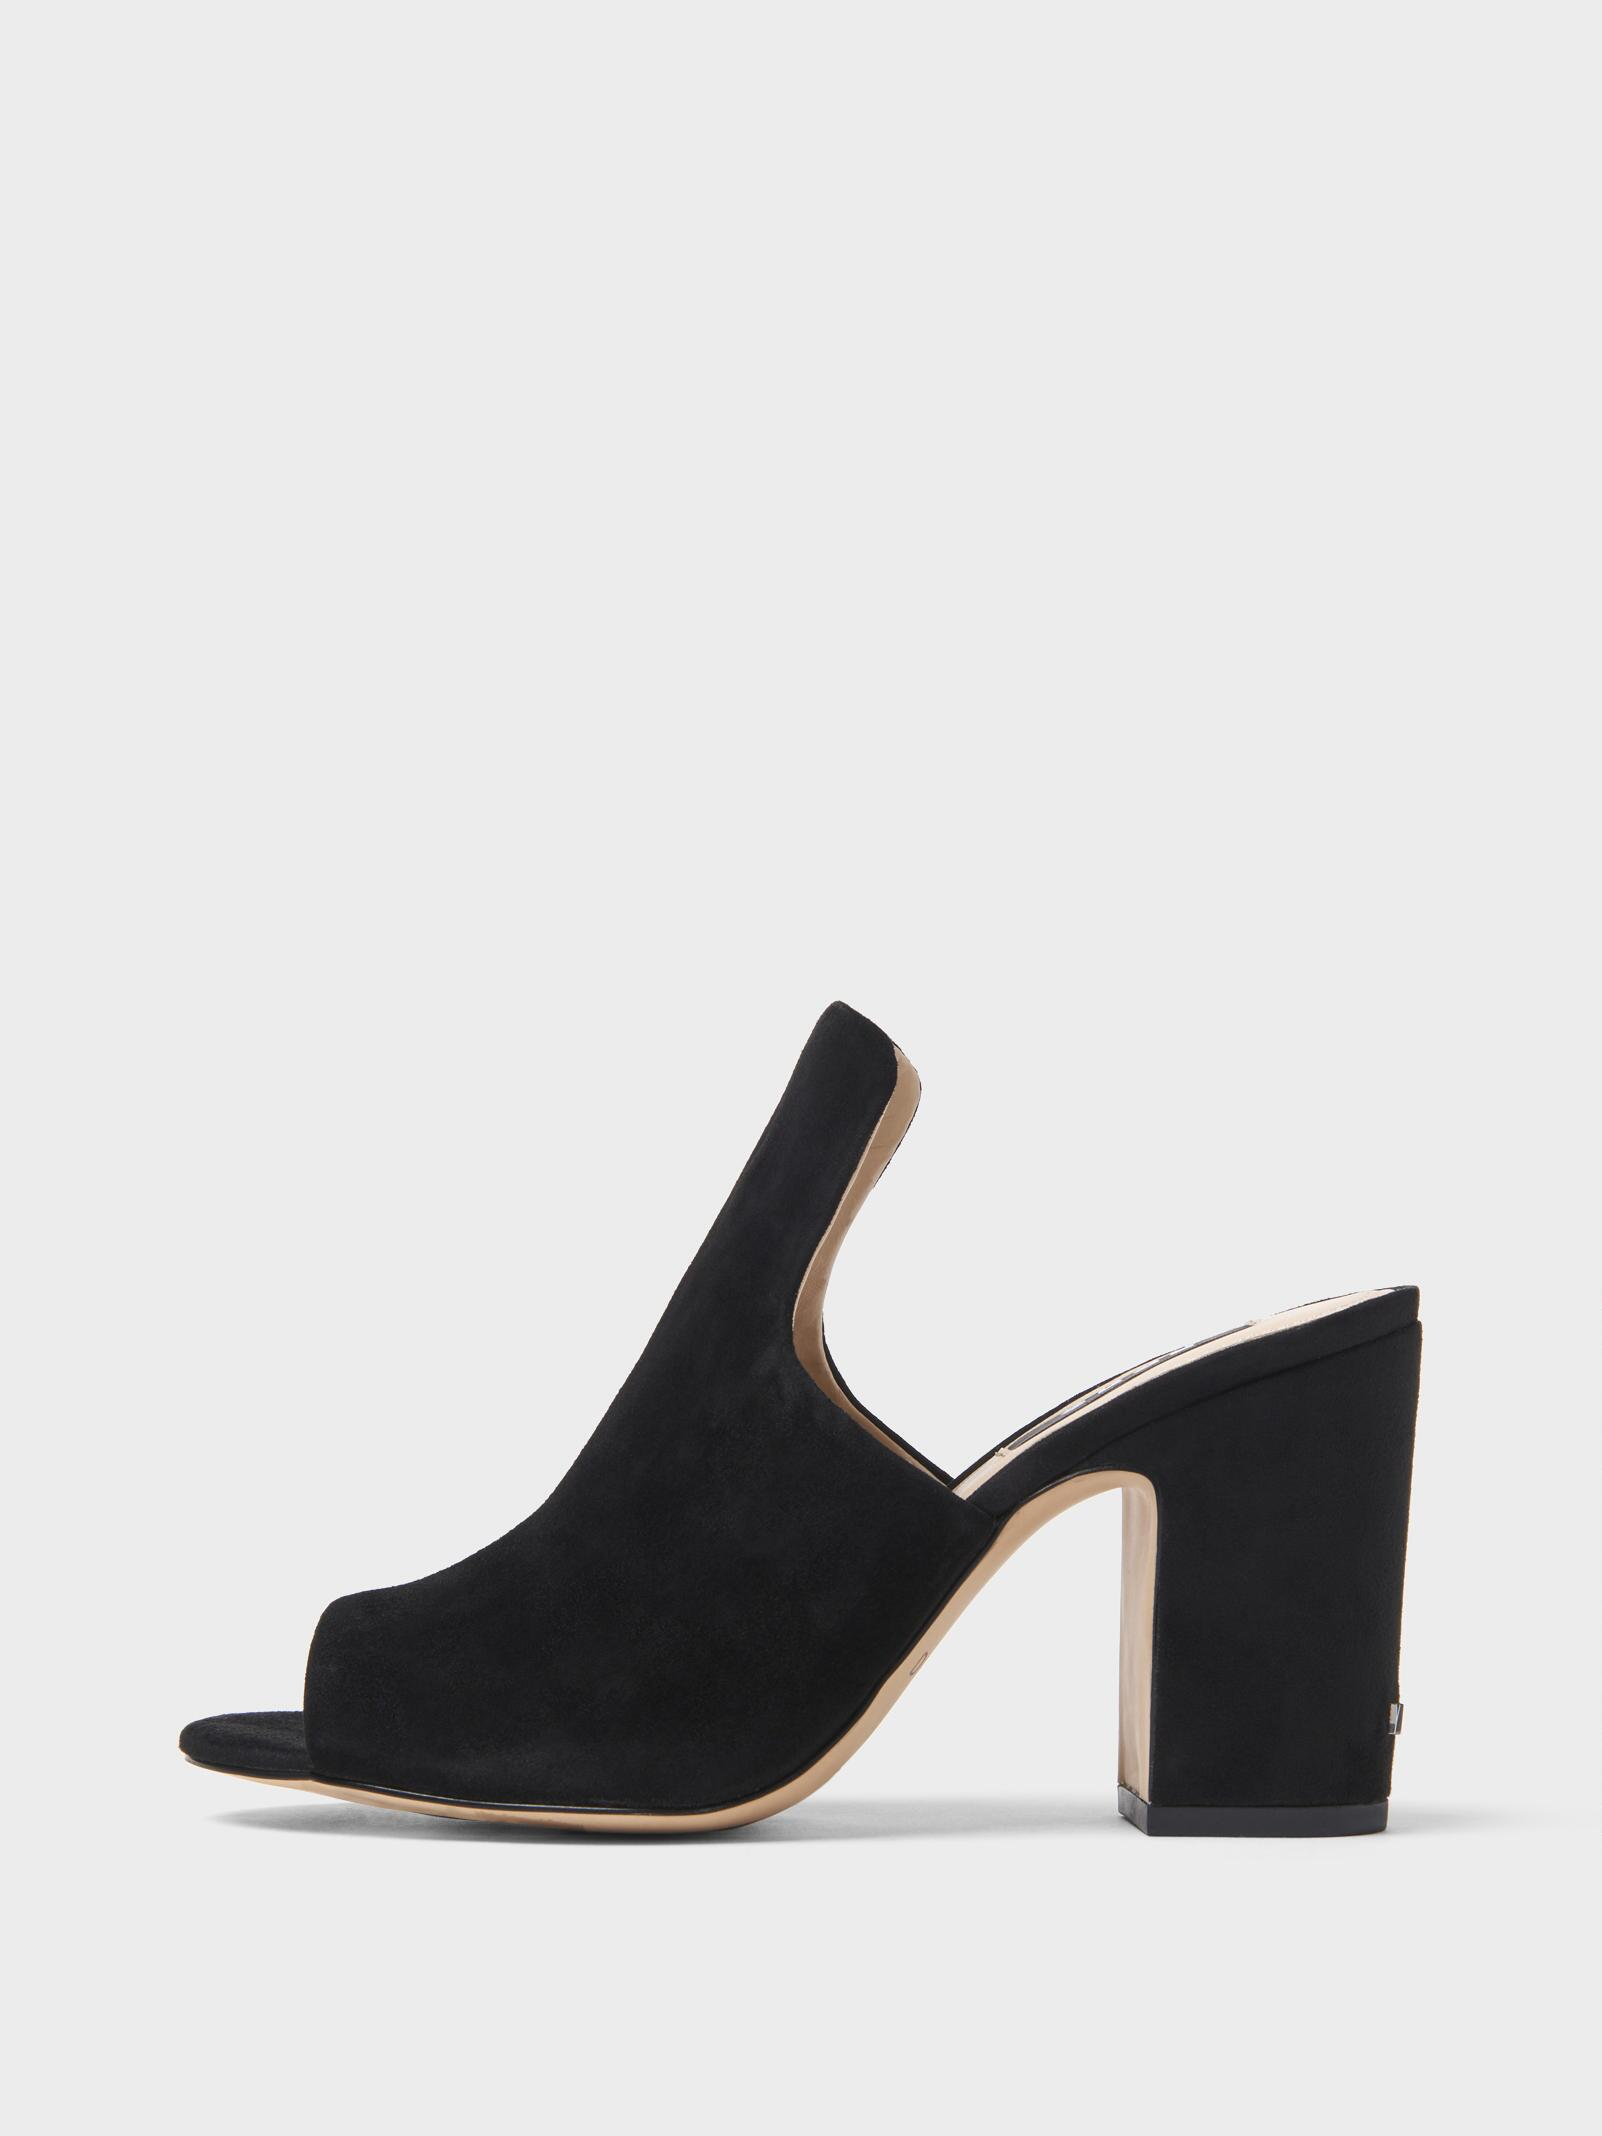 free shipping footaction clearance store cheap online Call It Spring Hester Heels really ZzPicMJMG2